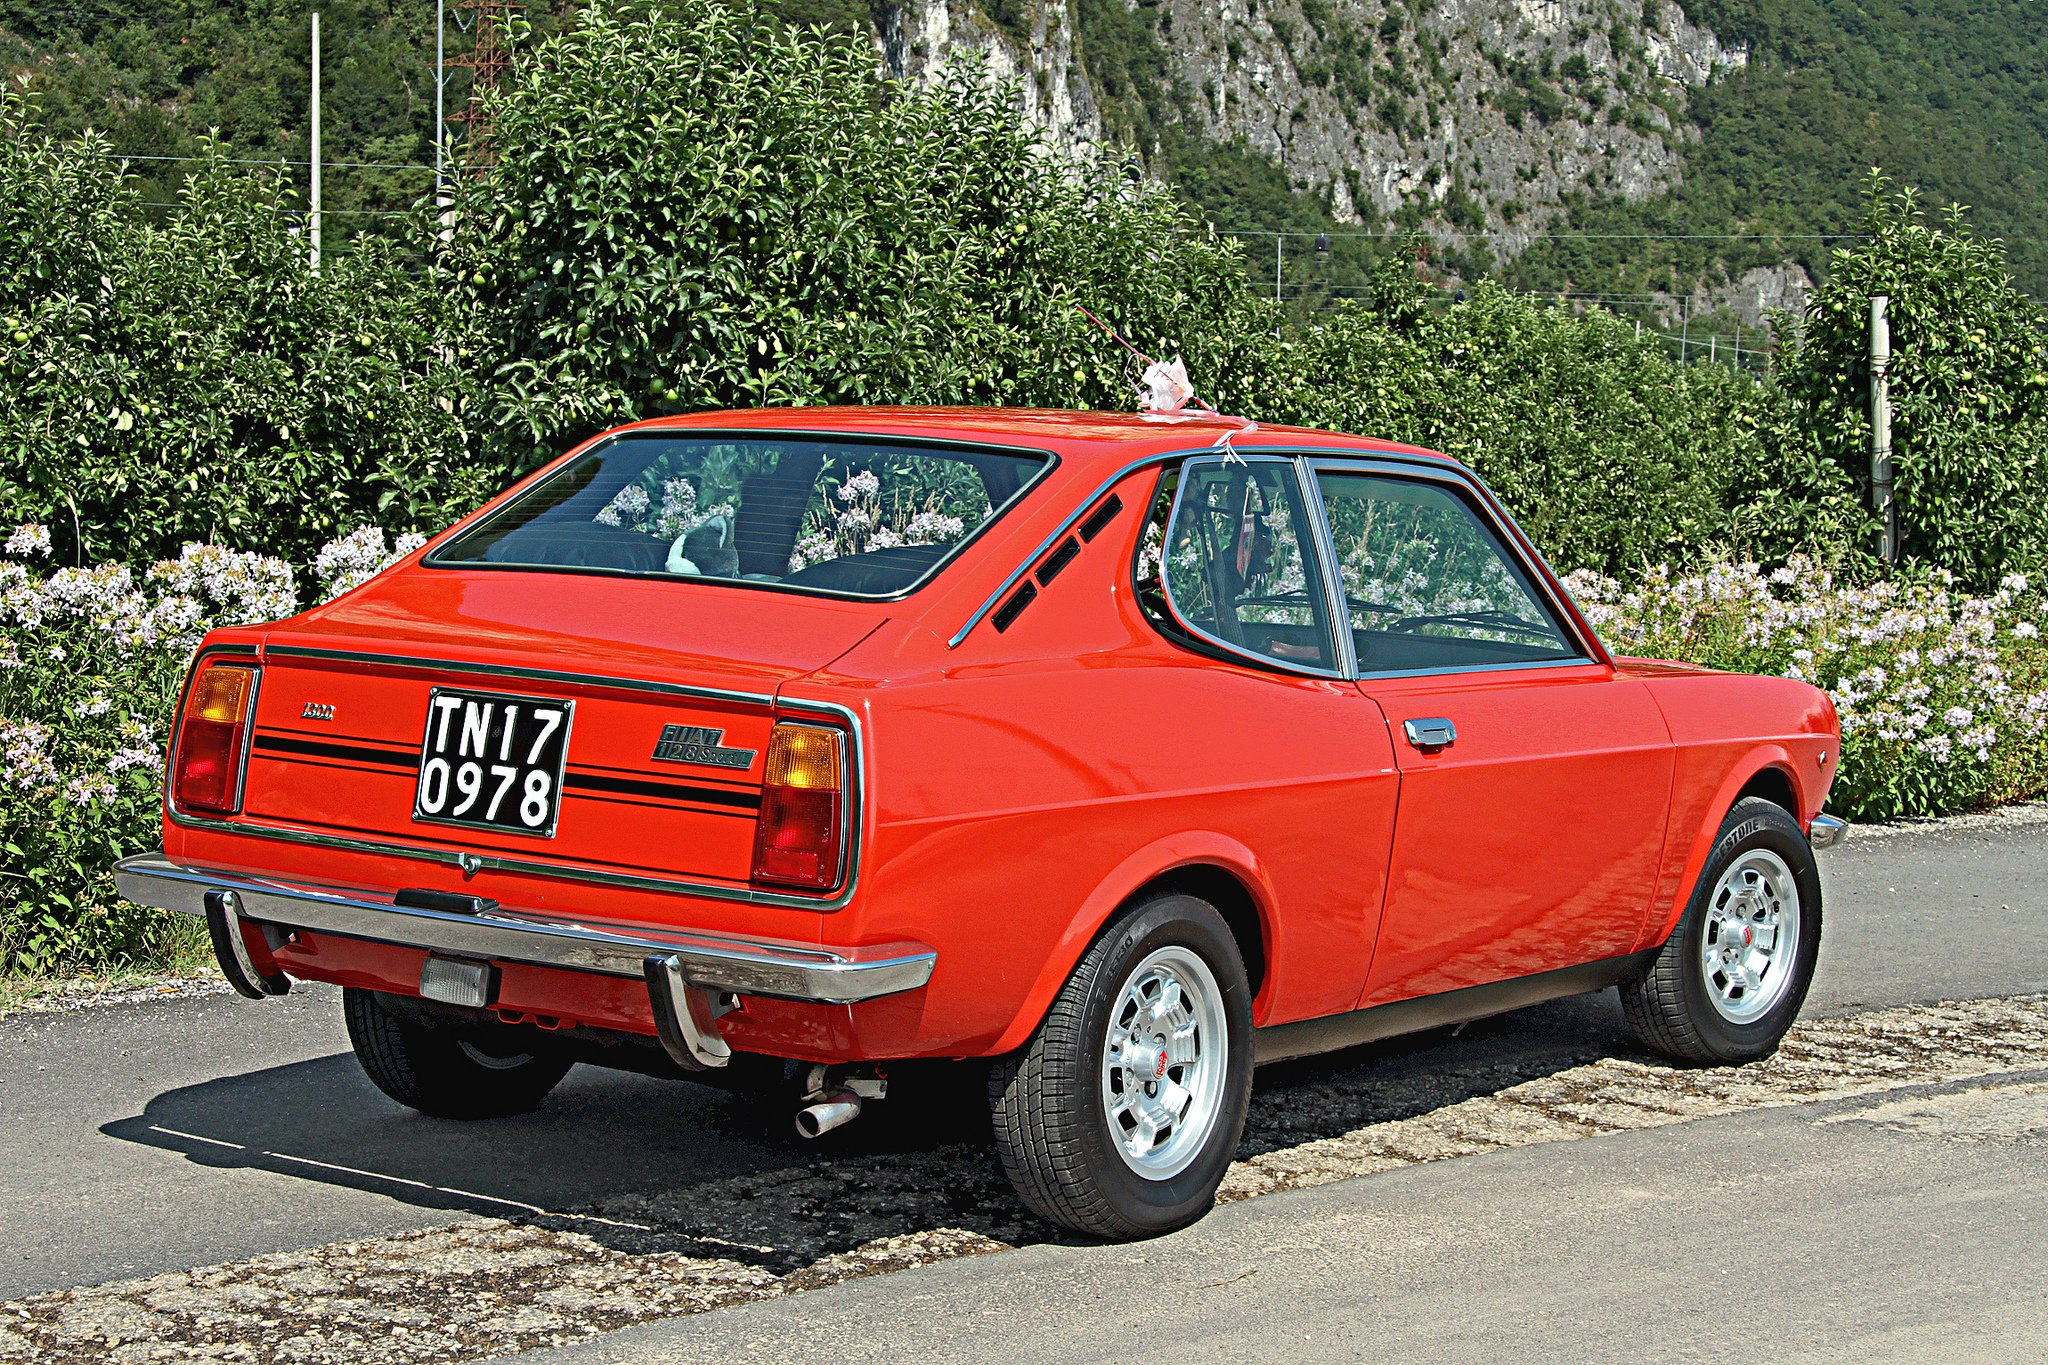 fiat 128 sport l coupe cars classic italia wallpaper. Black Bedroom Furniture Sets. Home Design Ideas